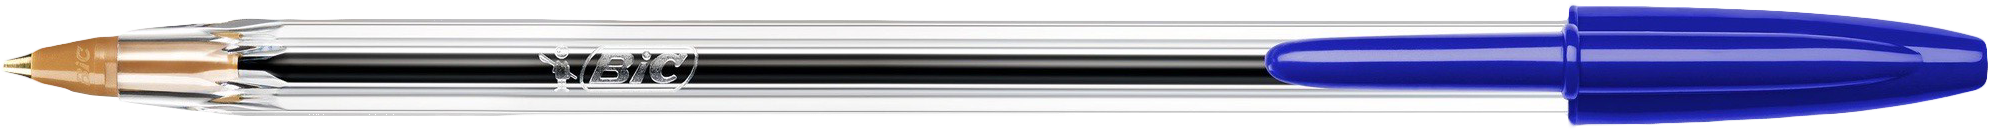 bicpen (1).png